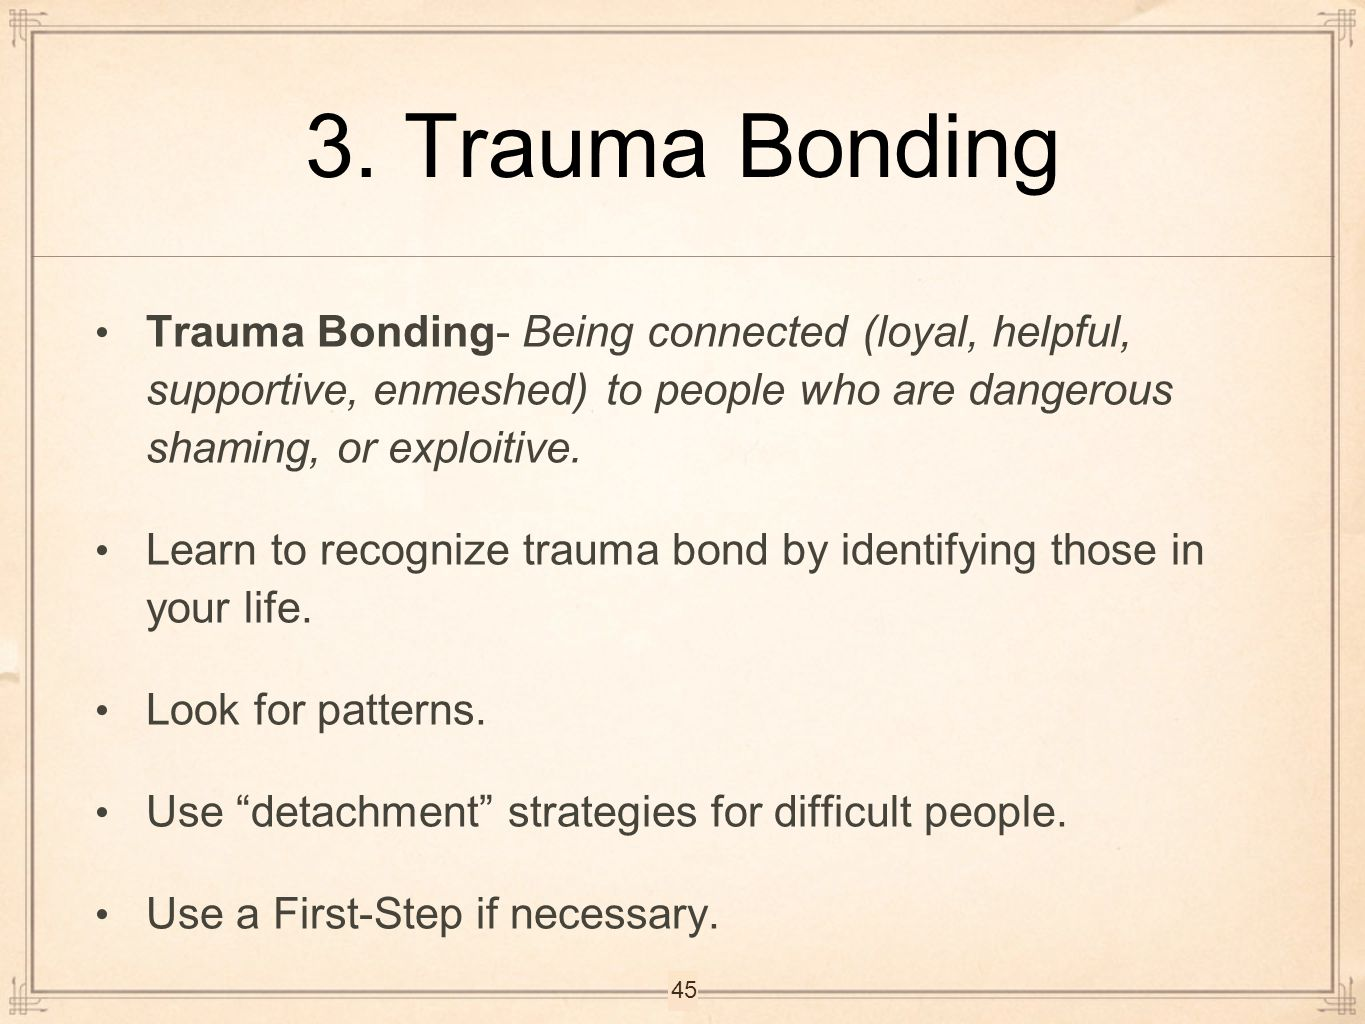 3. Trauma Bonding Trauma Bonding- Being connected (loyal, helpful, supportive, enmeshed) to people who are dangerous shaming, or exploitive.